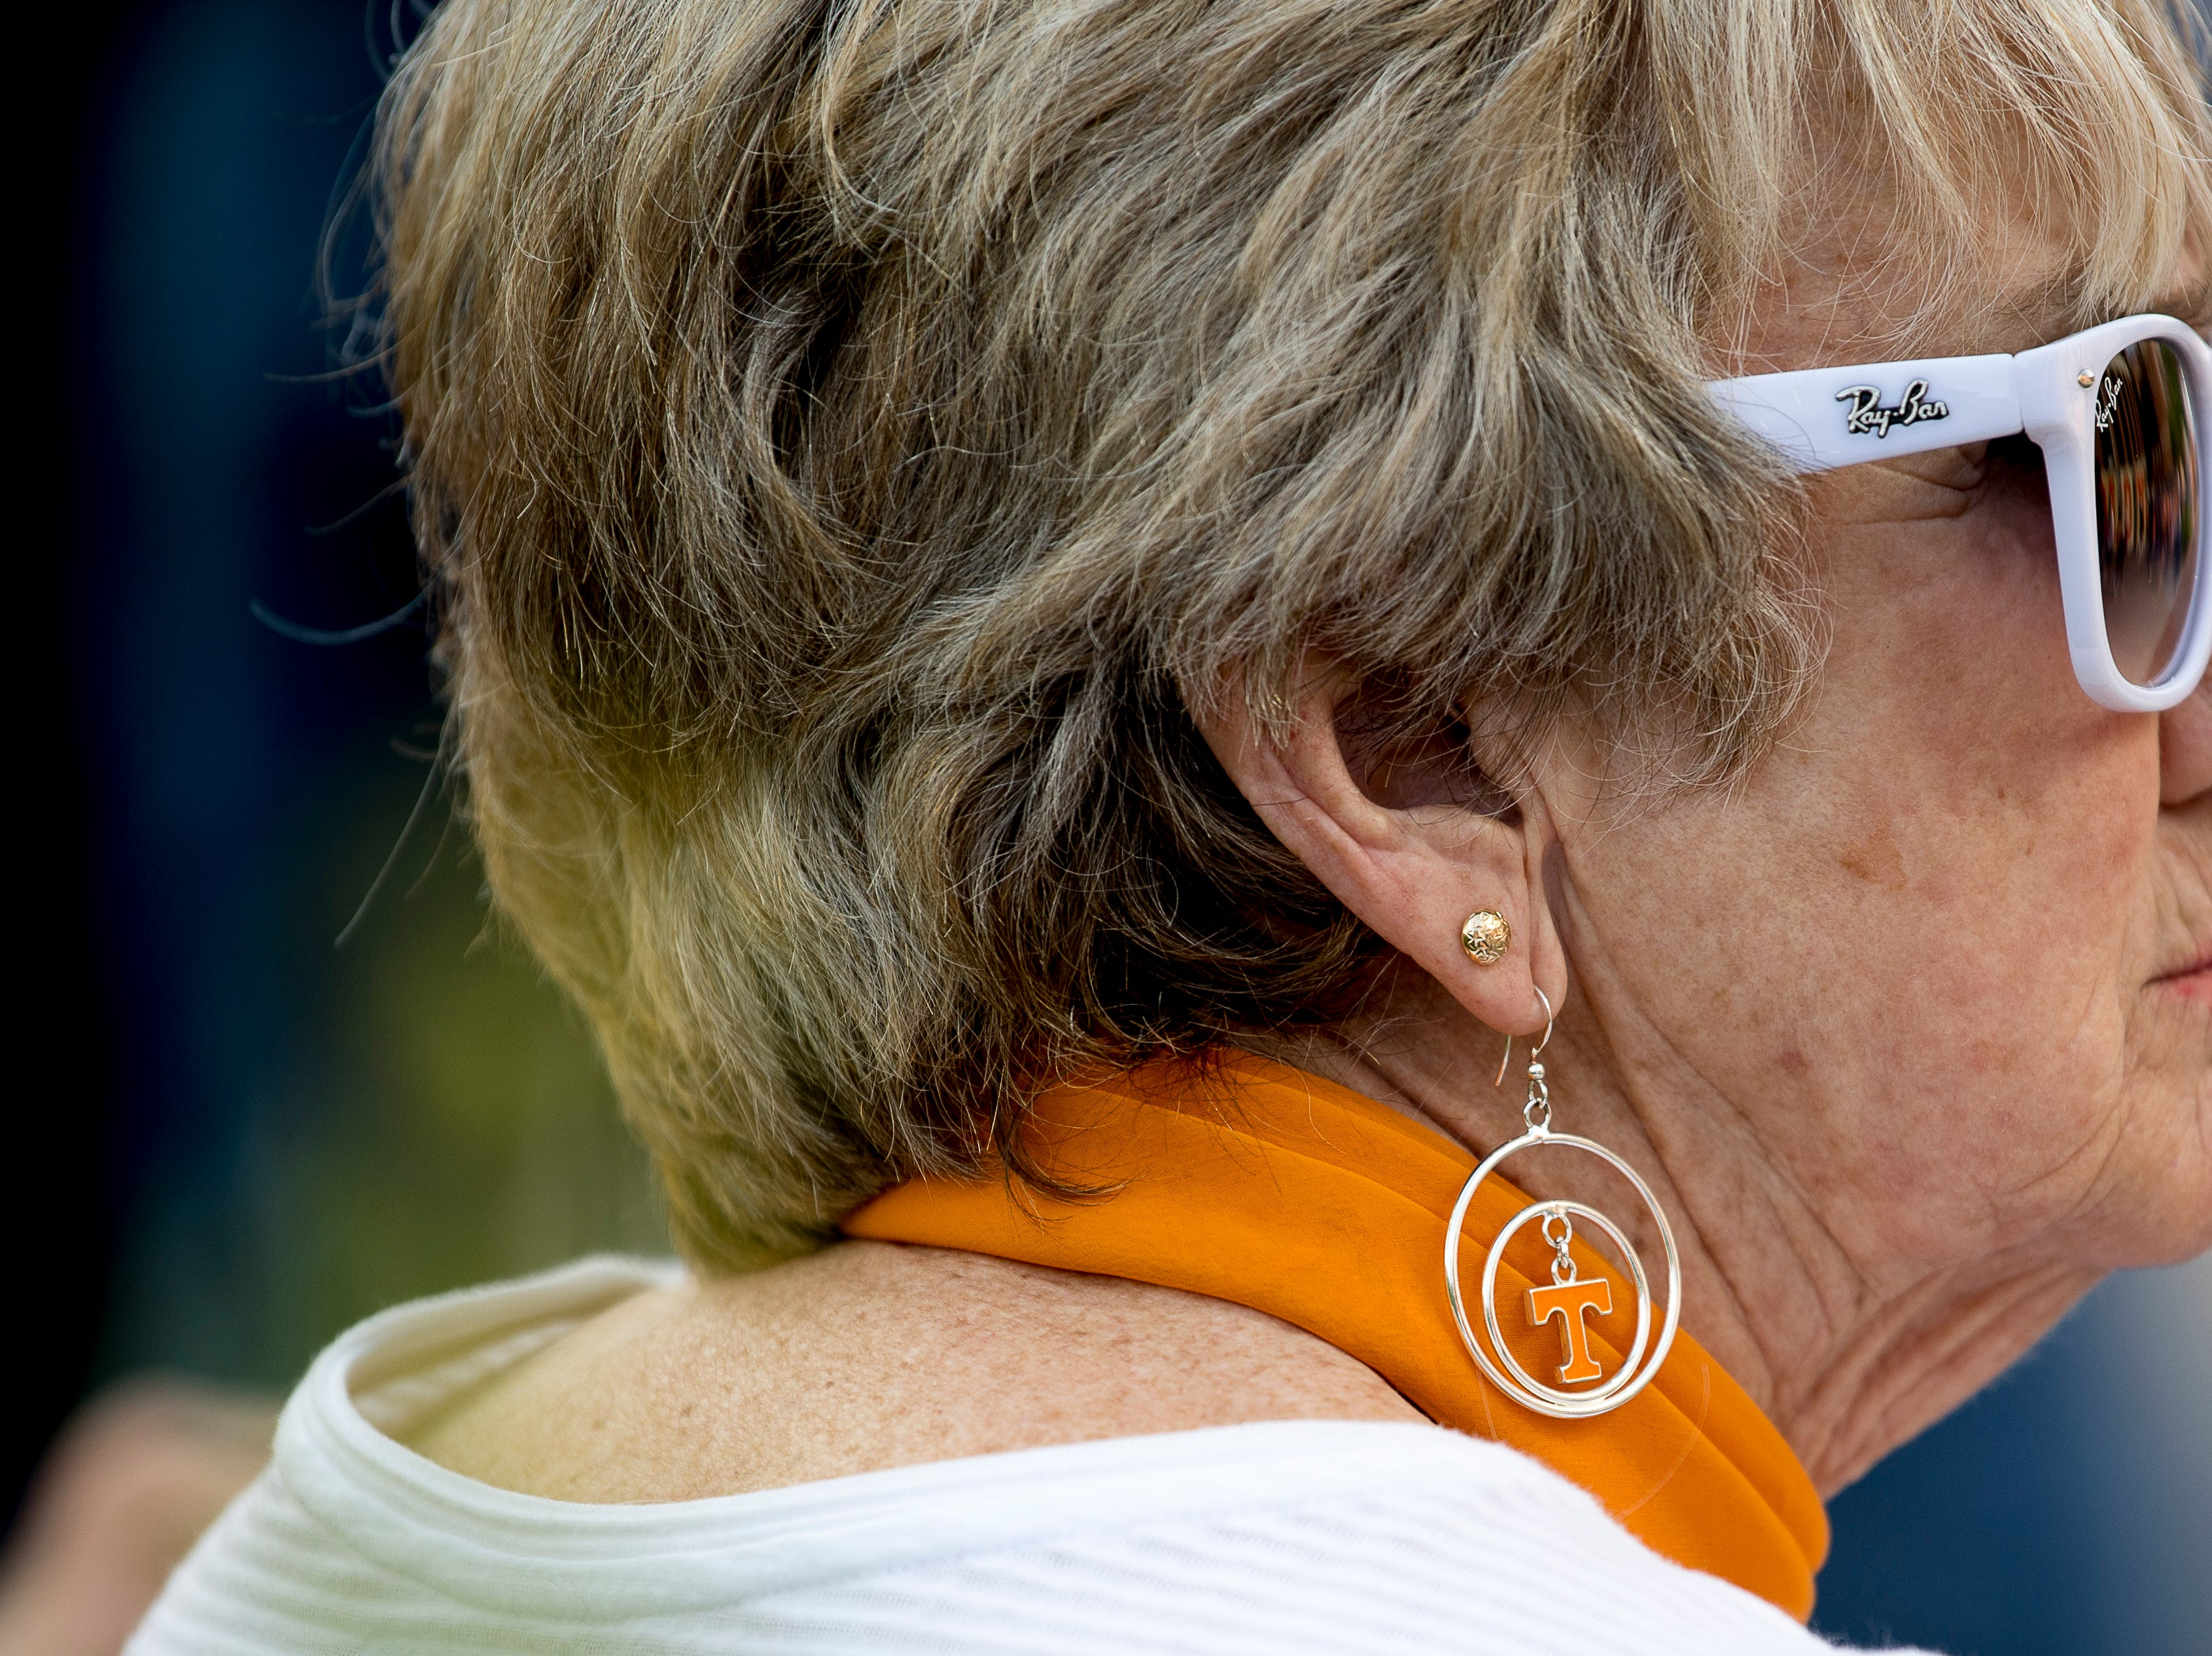 Jo Adams, of Dayton, sports stylish Tennessee earrings at the Tennessee Spring Game at Neyland Stadium in Knoxville, Tennessee on Saturday, April 13, 2019.